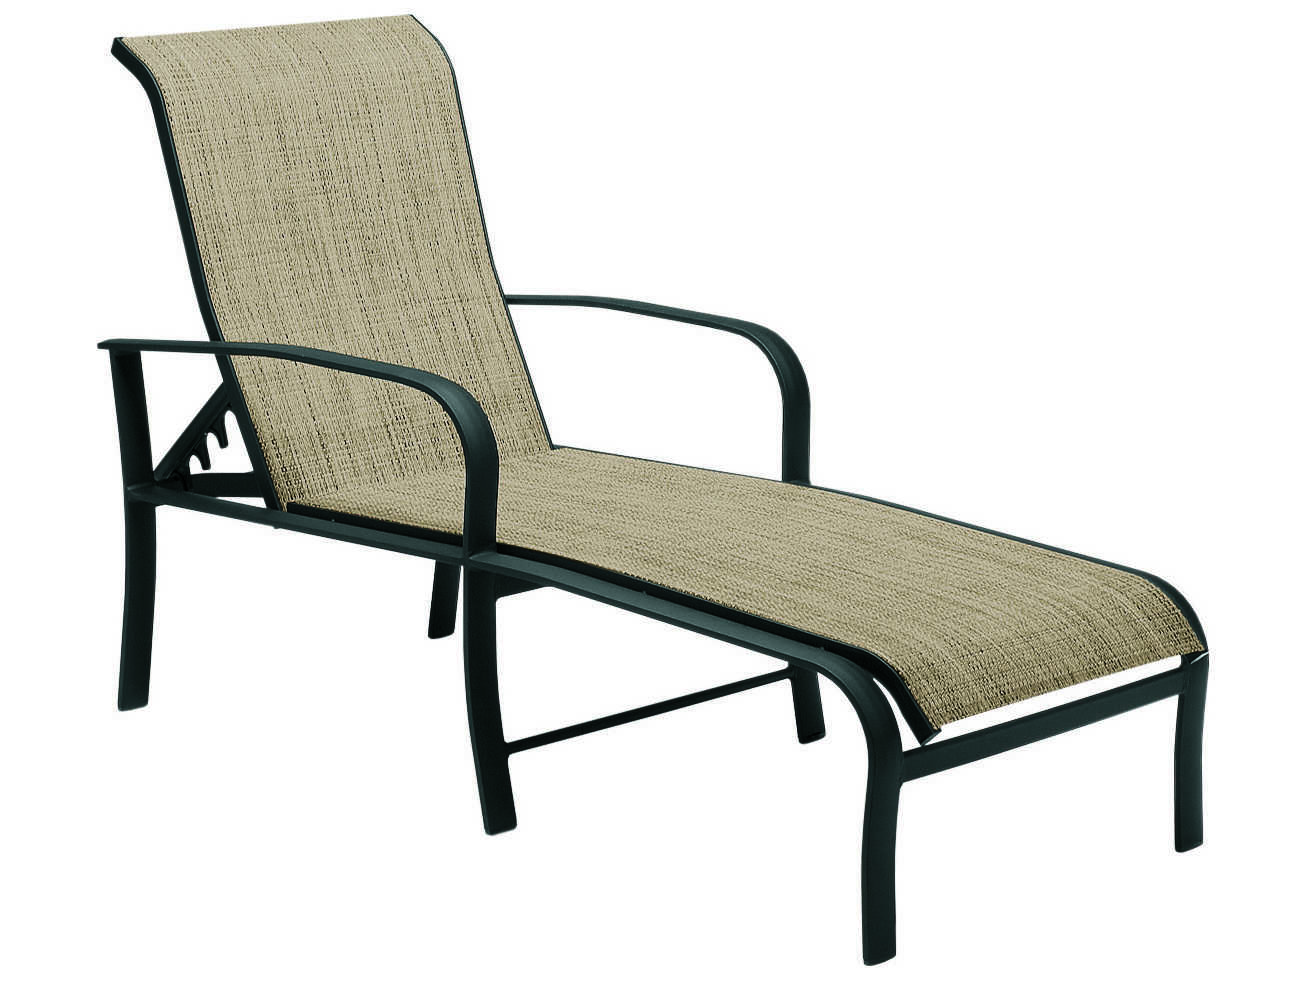 Woodard fremont sling aluminum adjustable chaise lounge for Chaise lounge aluminum